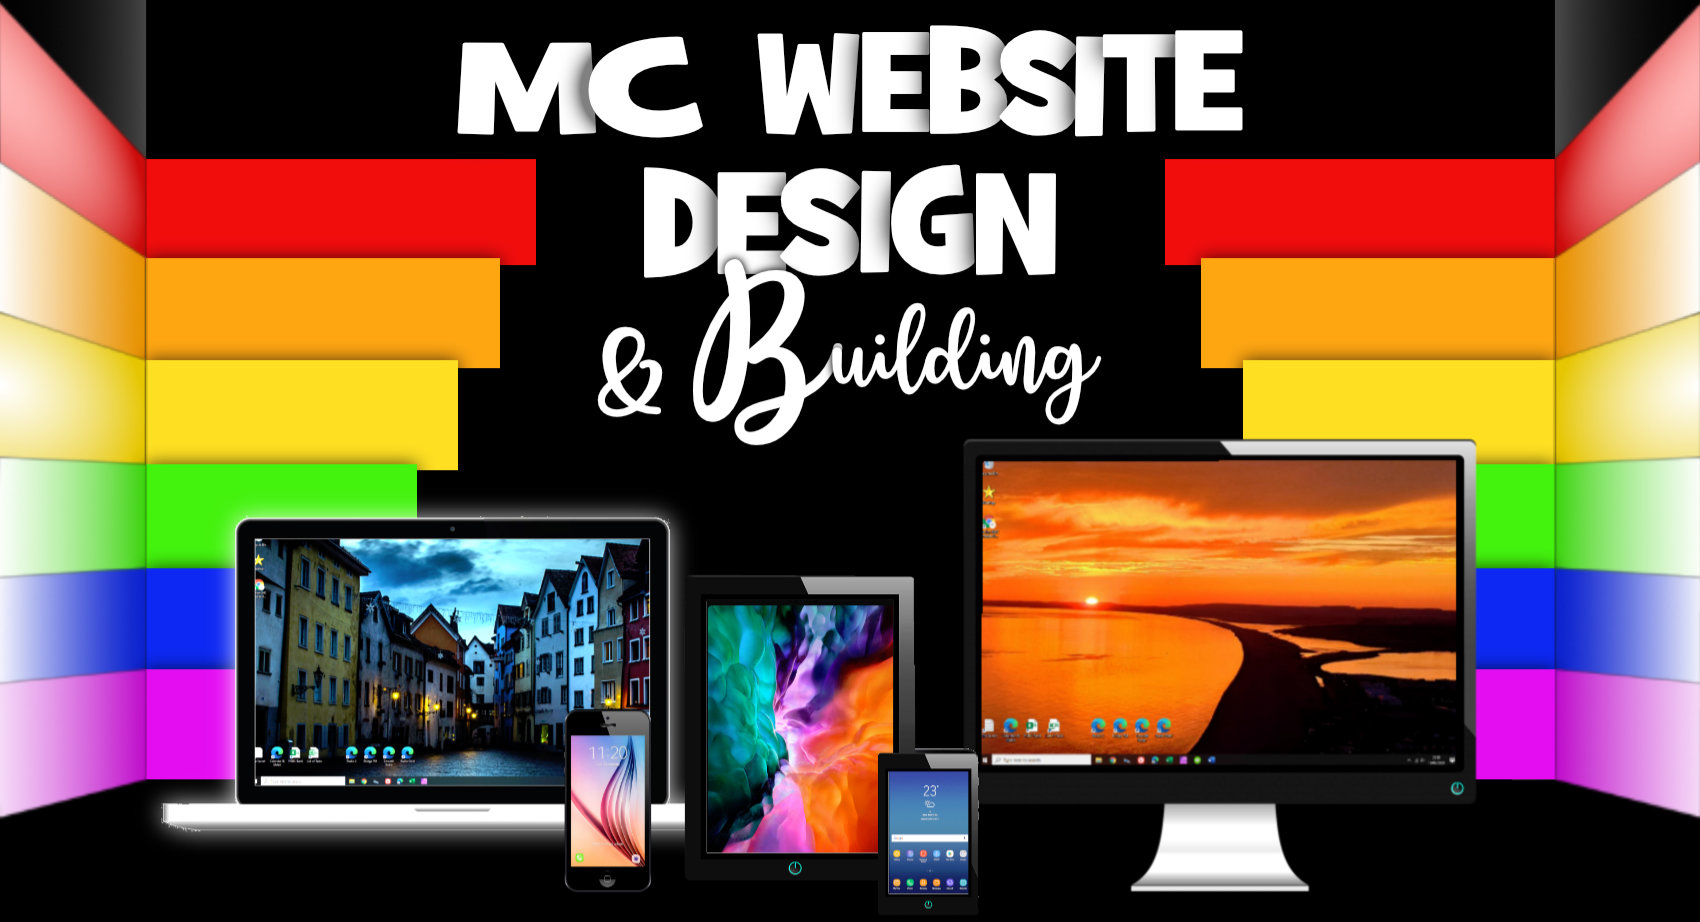 MC Website Design - get your business online and earning in days!